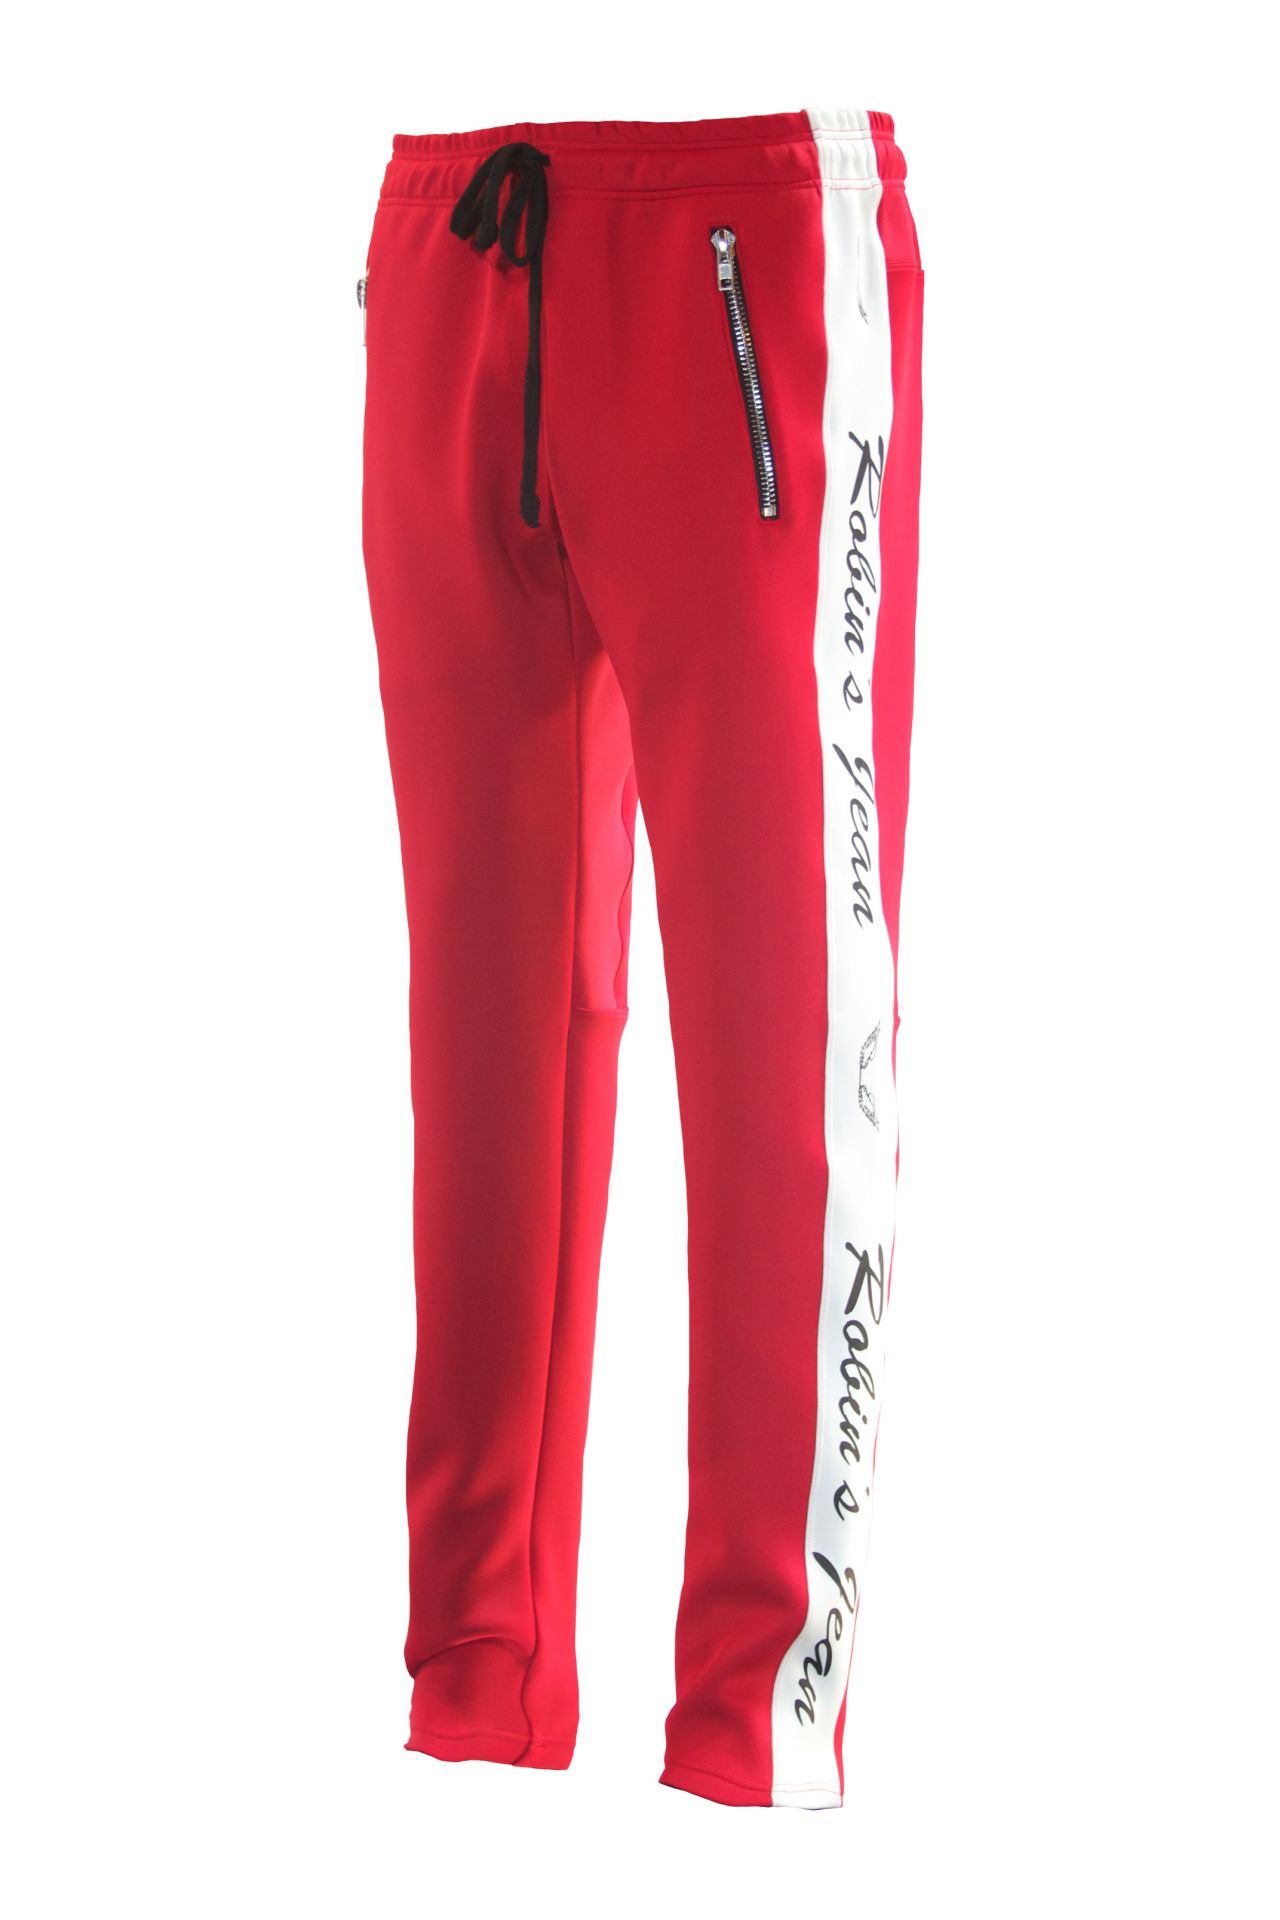 ROBIN TEAM JOGGER IN RED